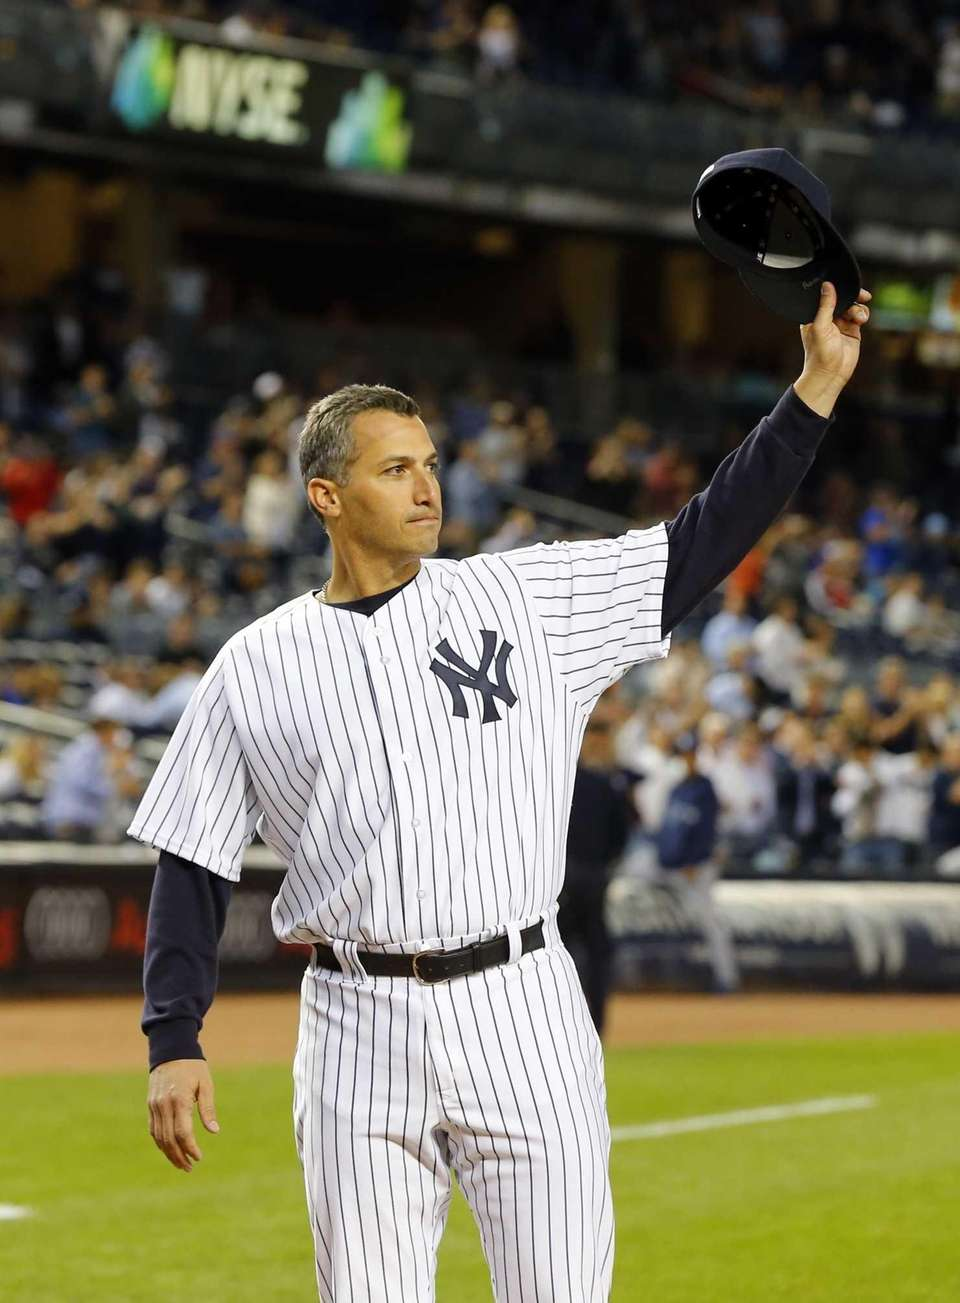 Andy Pettitte of the Yankees salutes the crowd